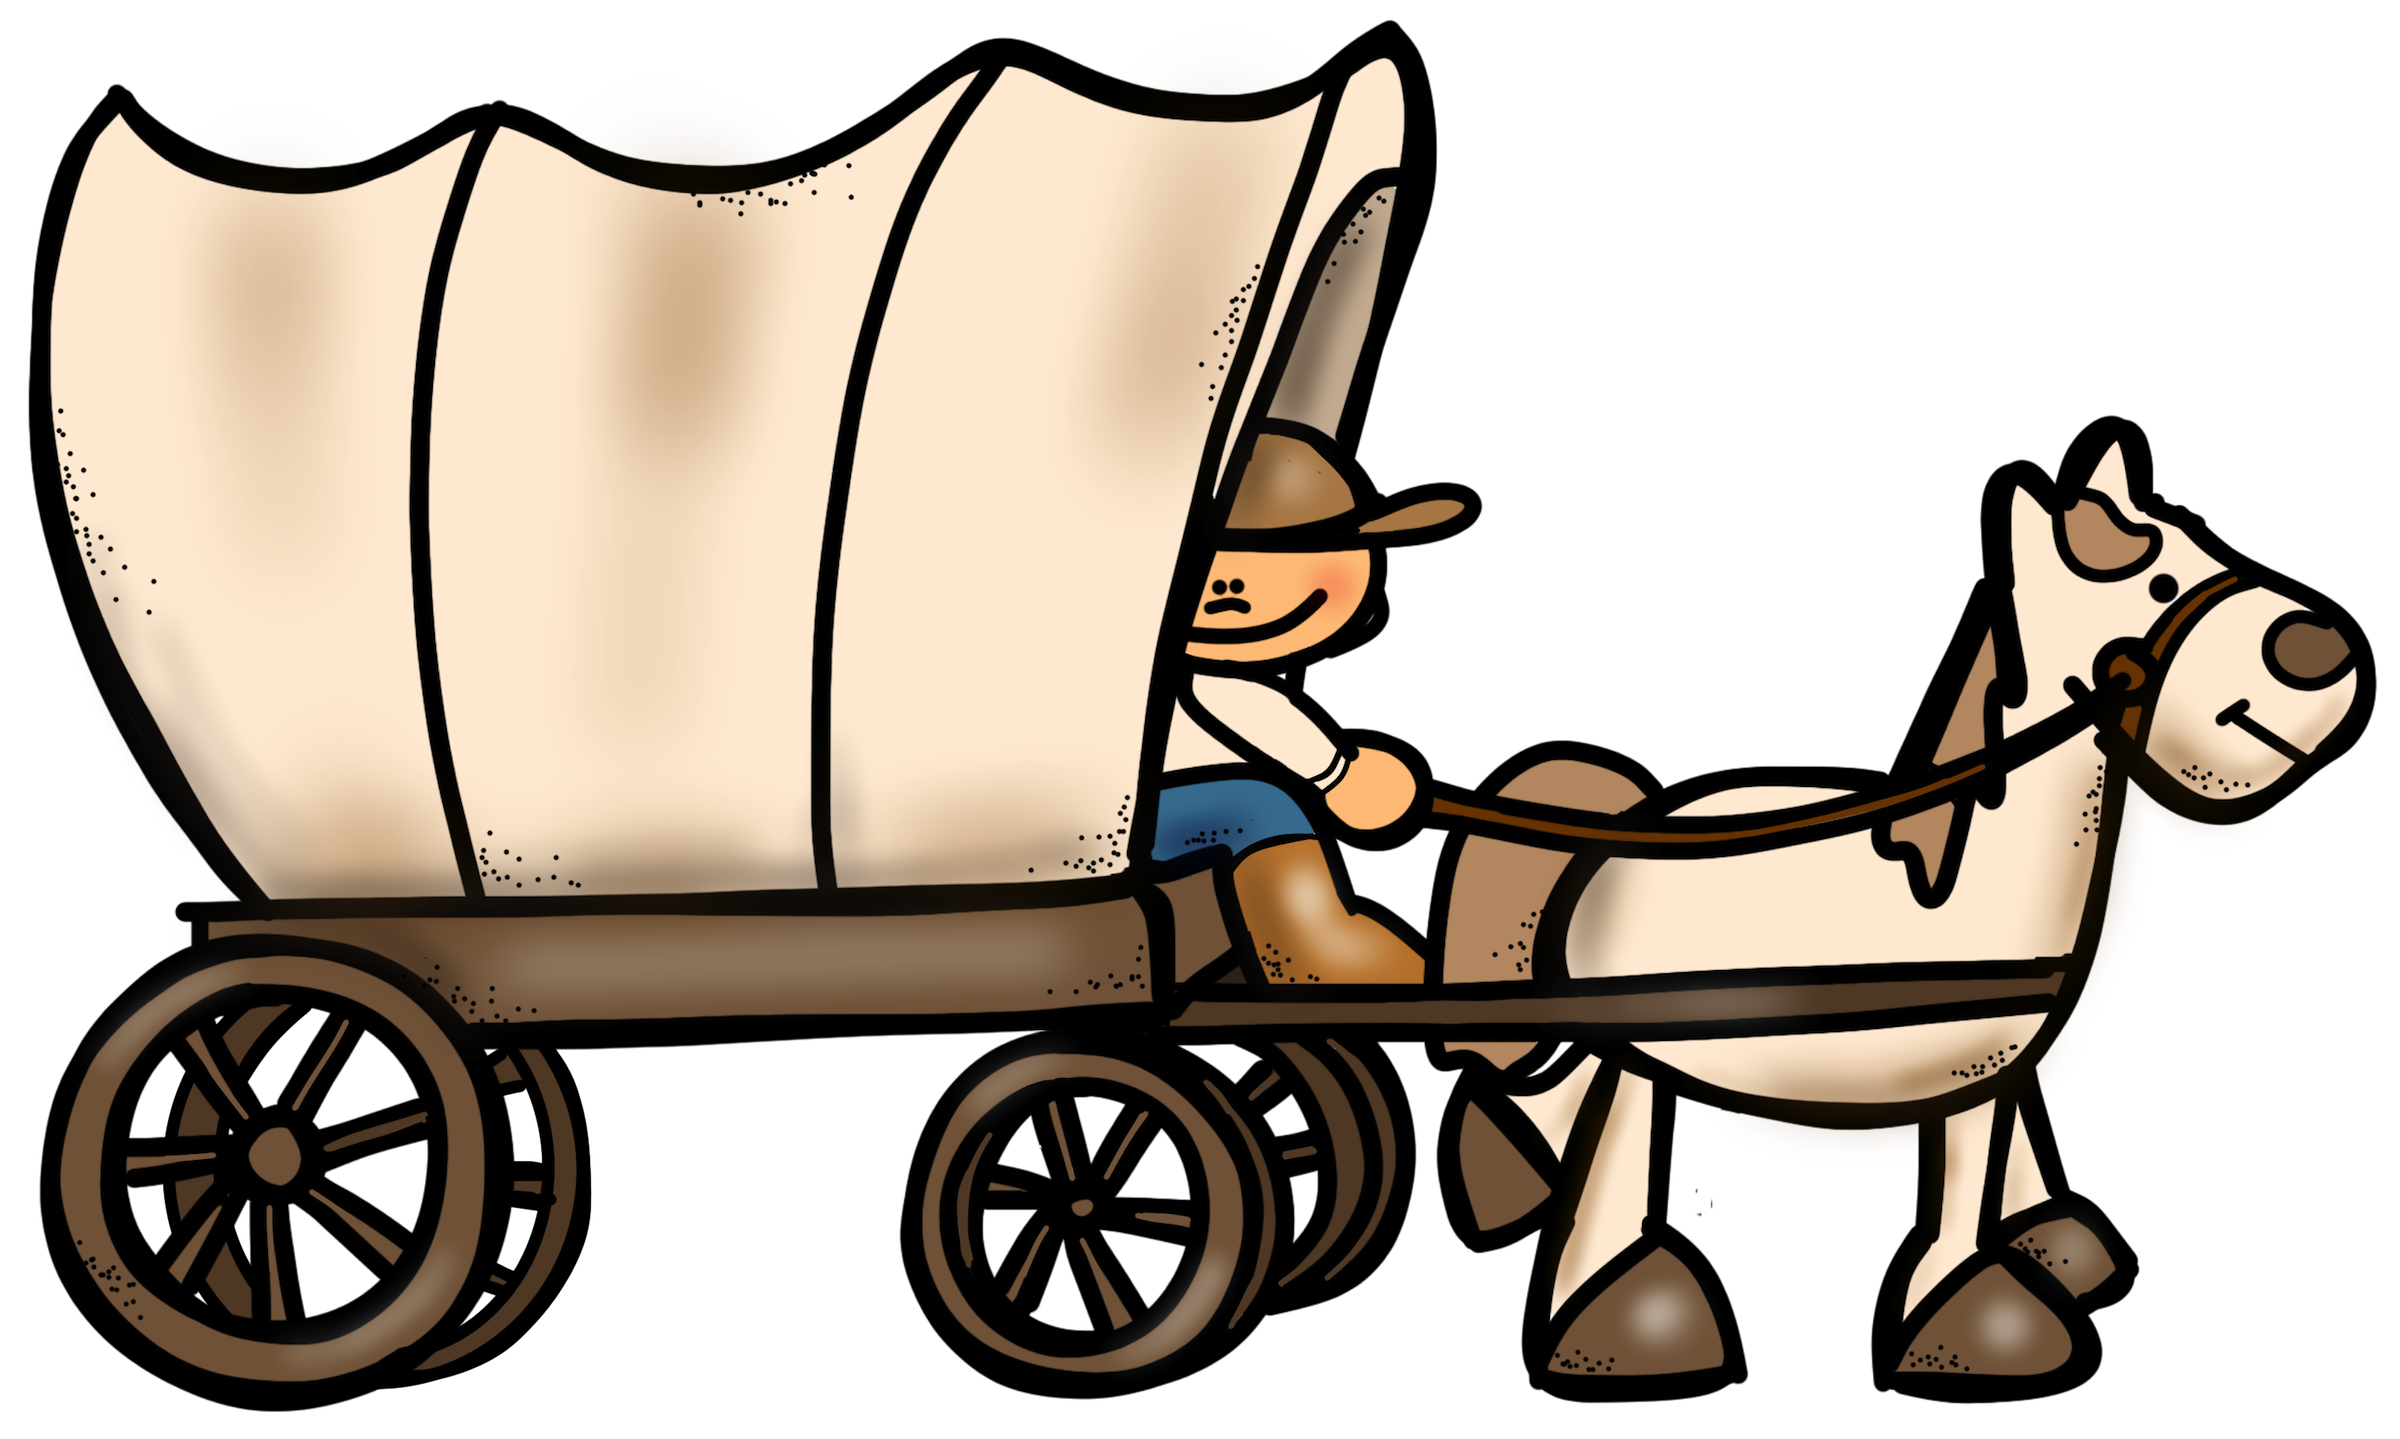 Wagon clipart westward movement. Cliparts free download best